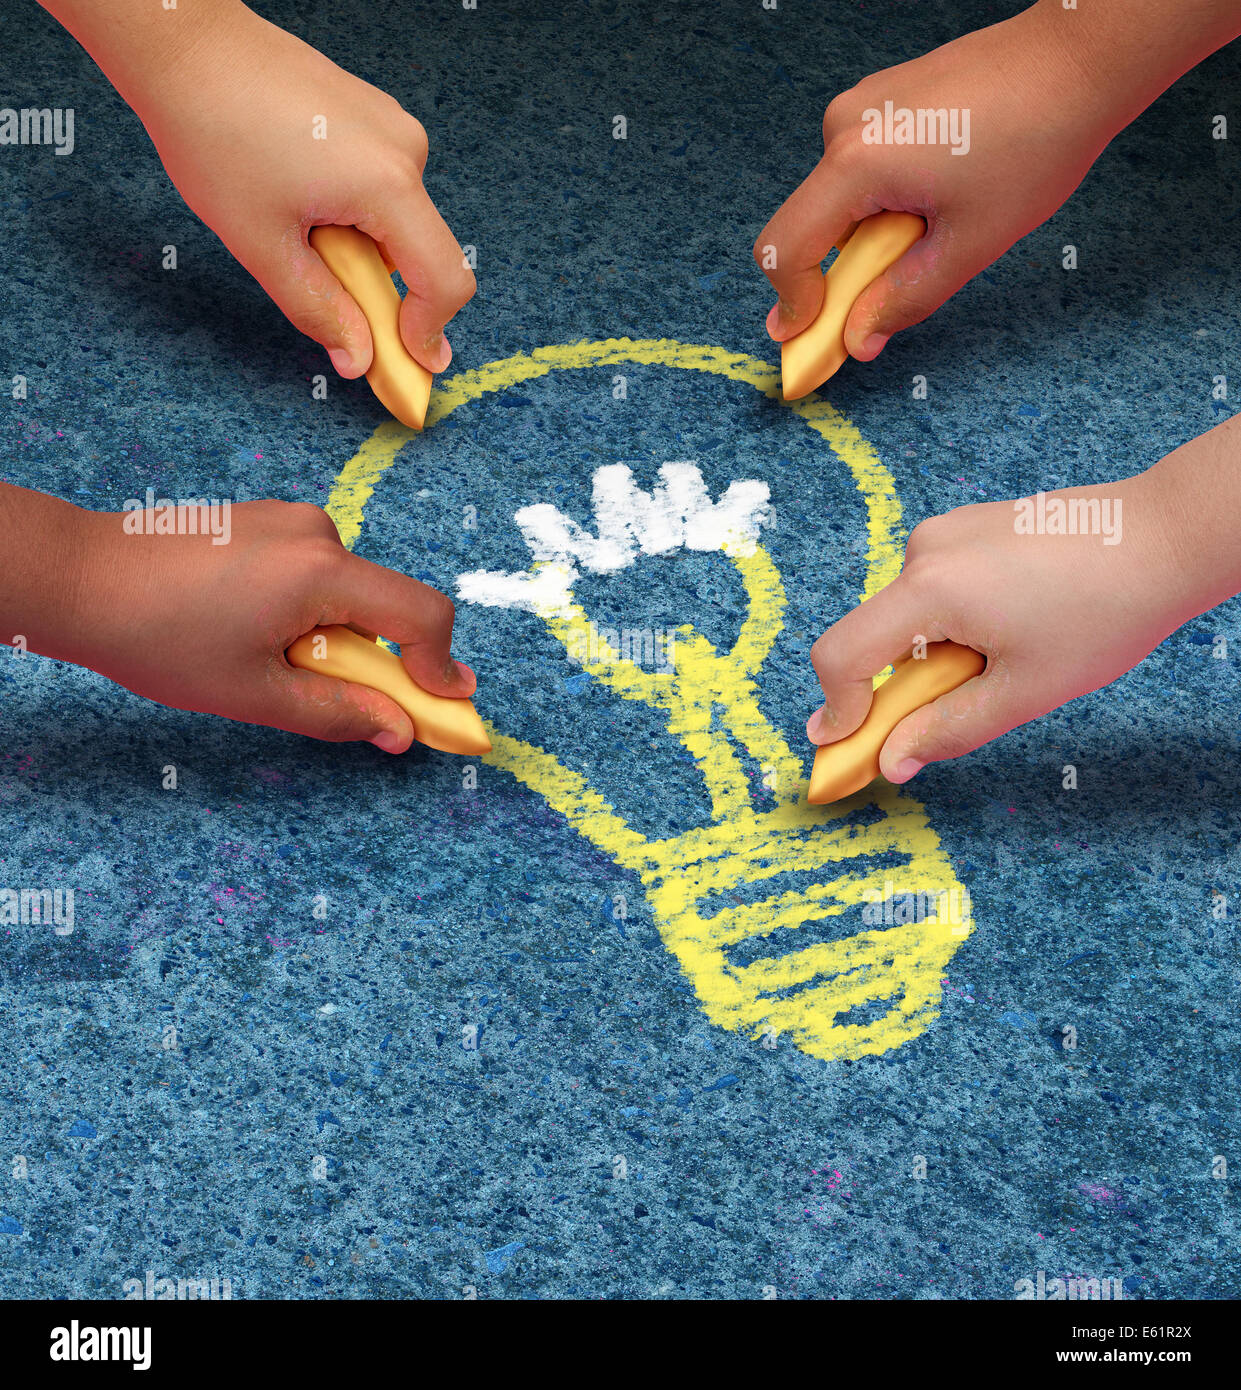 Community ideas education concept as a group of children hands holding chalk drawing a lightbulb icon on a pavement - Stock Image